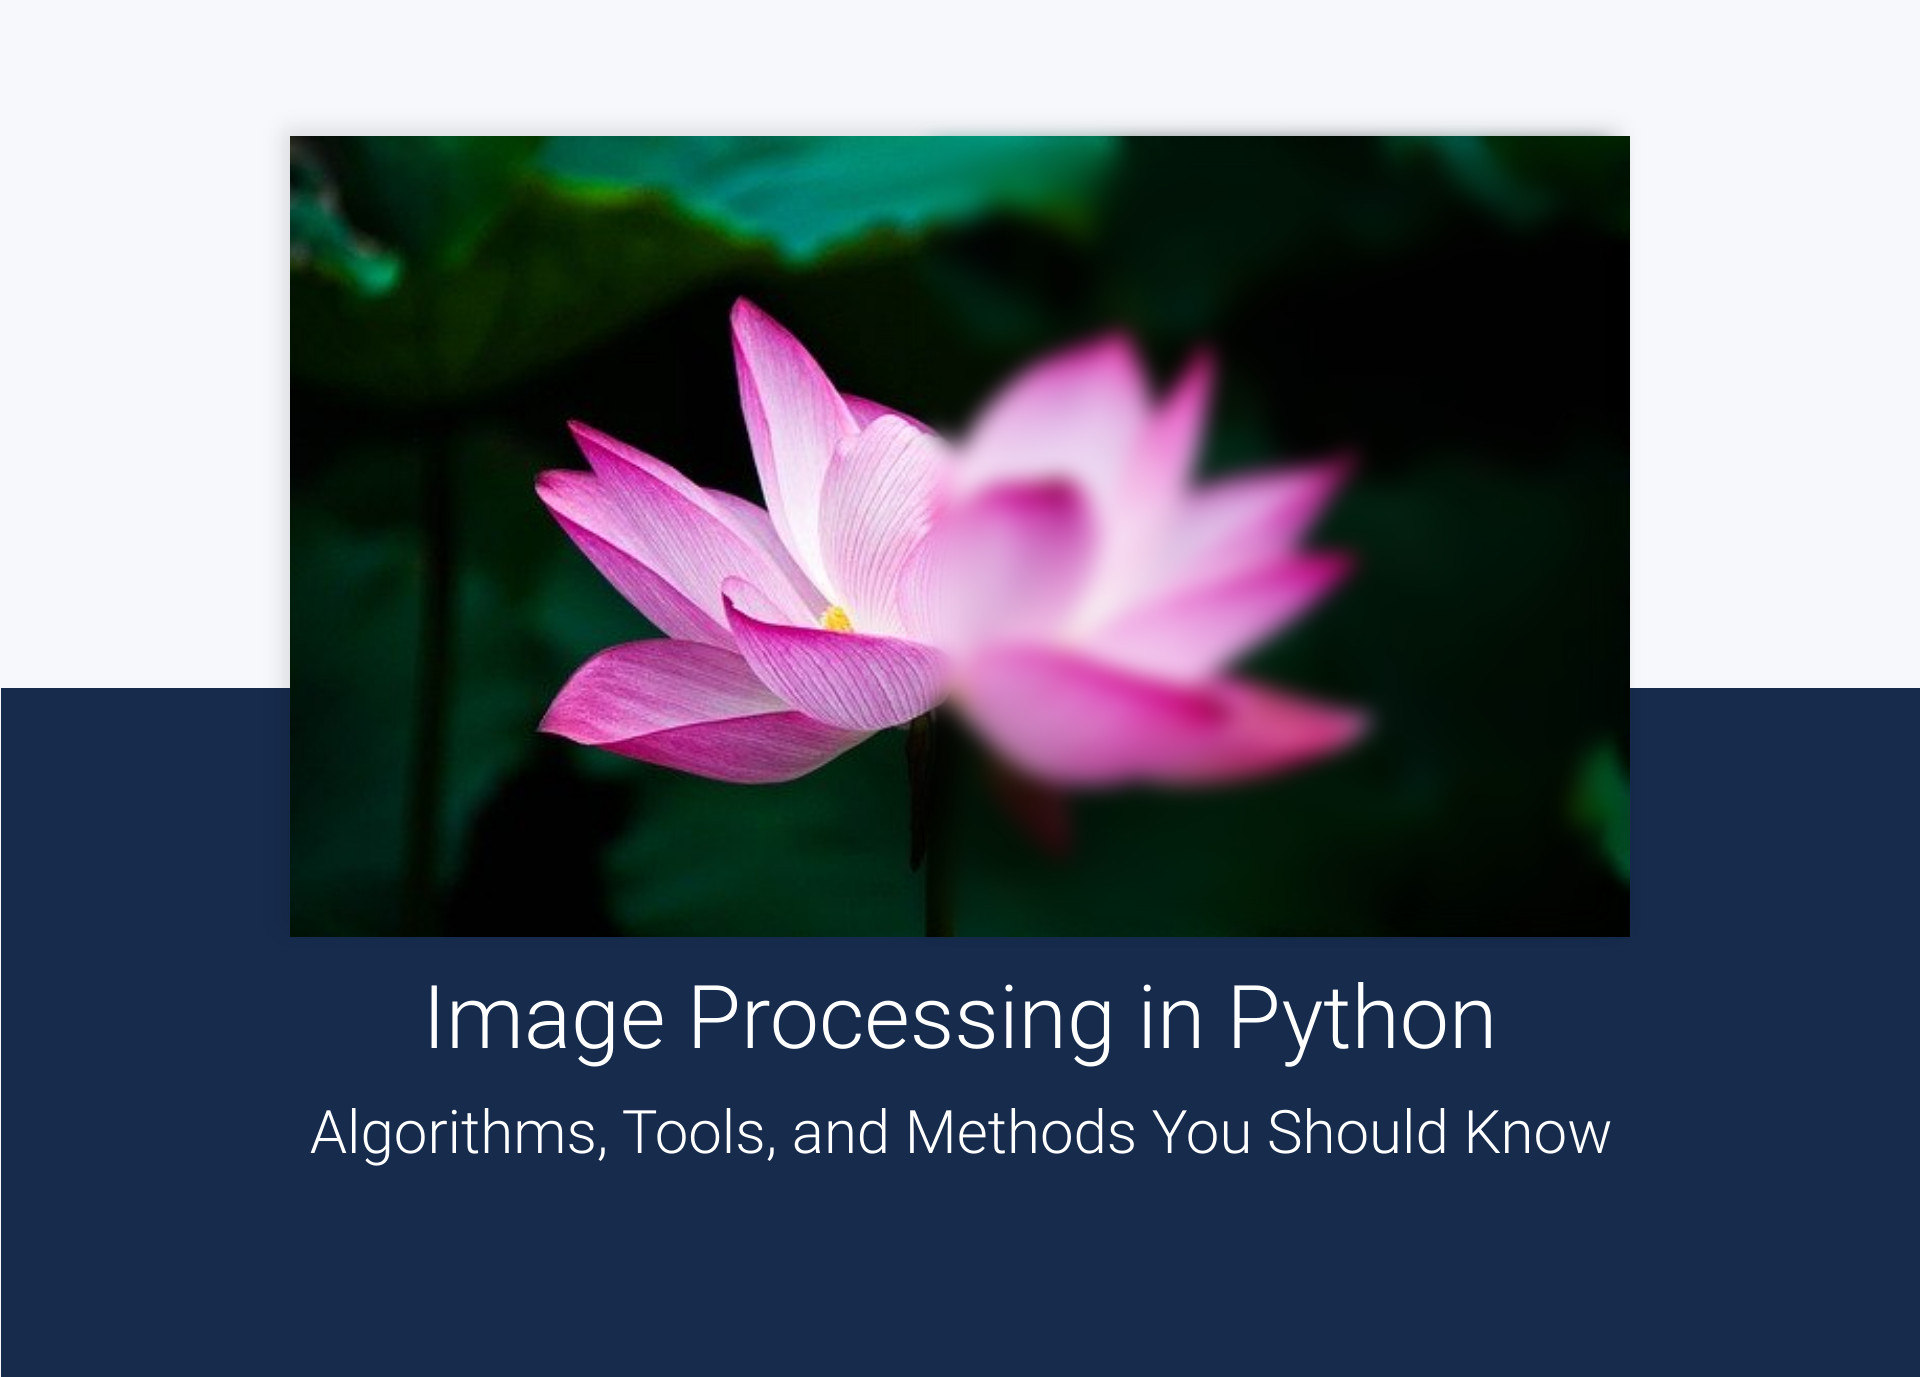 Image processing in python